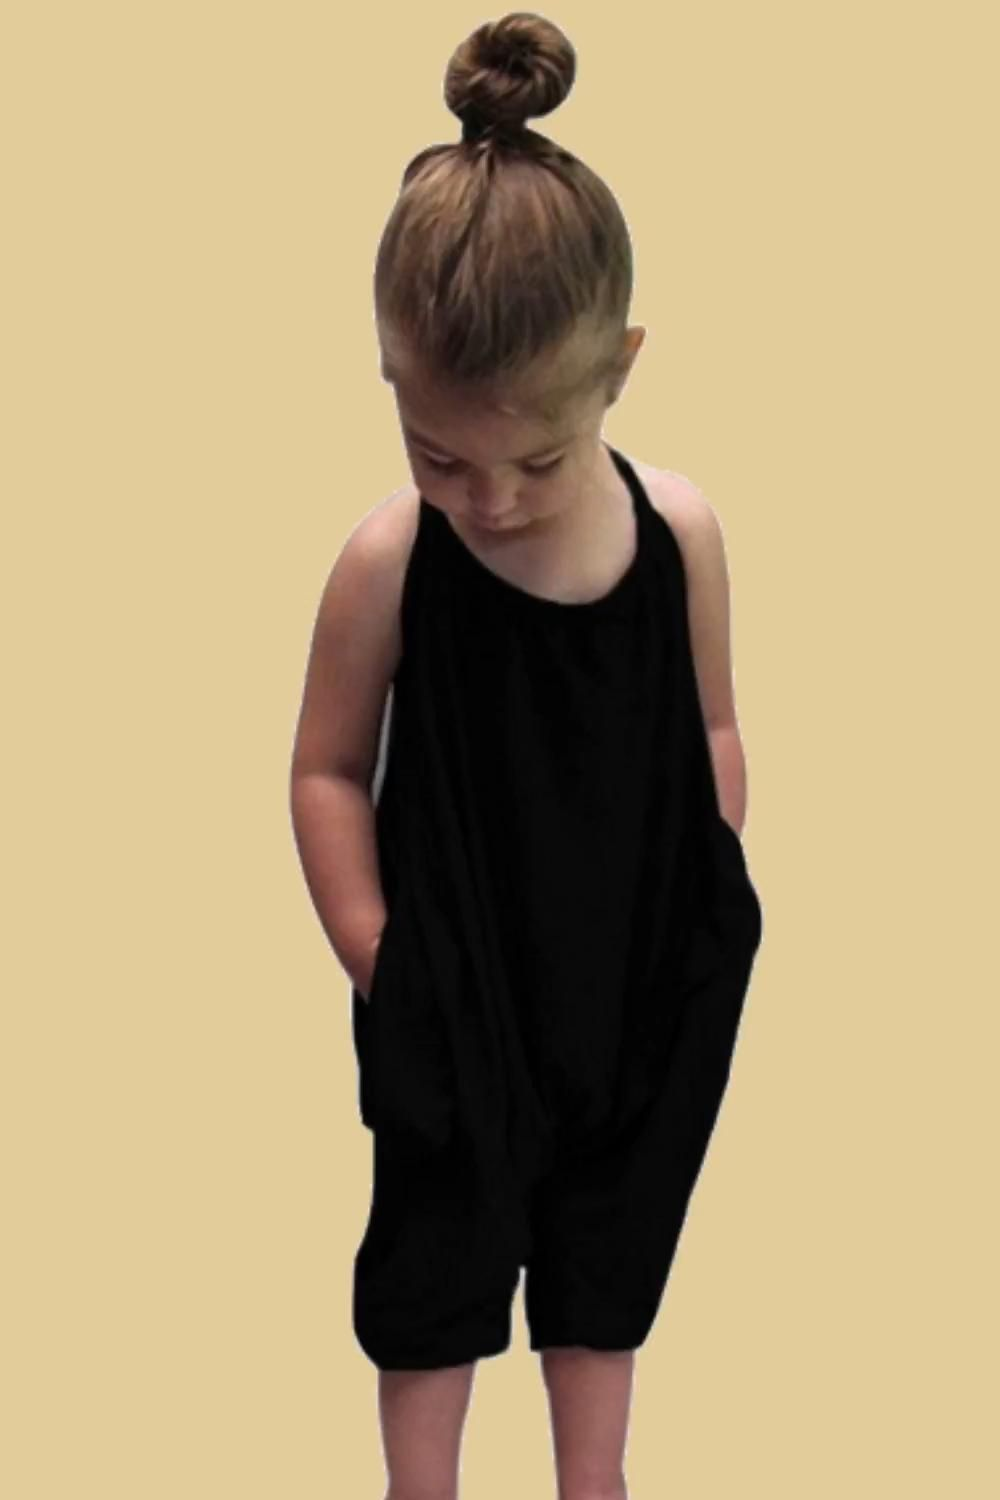 Black Baby cute harem jumpsuits for girls: Material: Cotton Blended, size 2T-7T, suitable